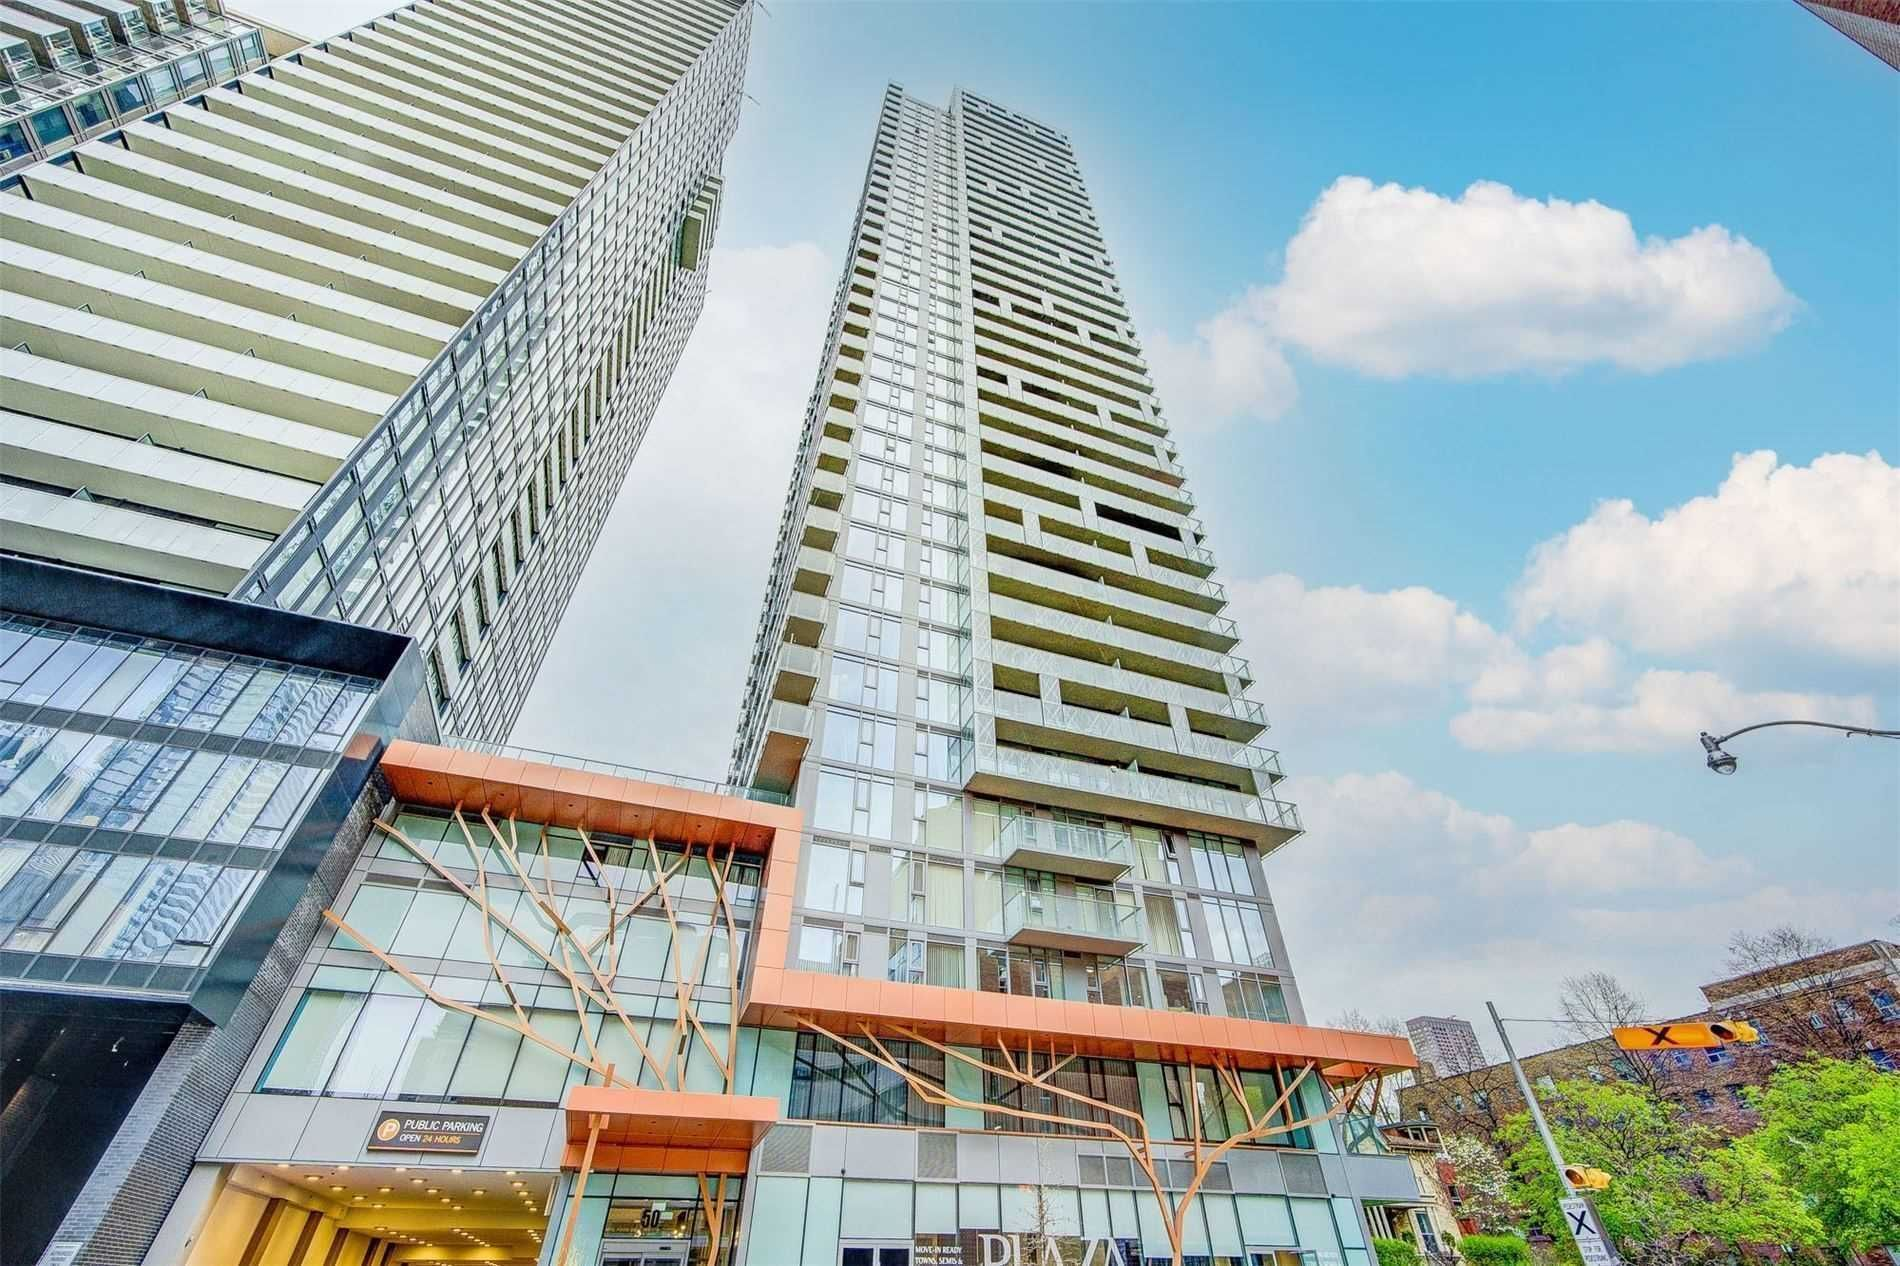 50 Wellesley St E, unit 2001 for rent in Toronto - image #1